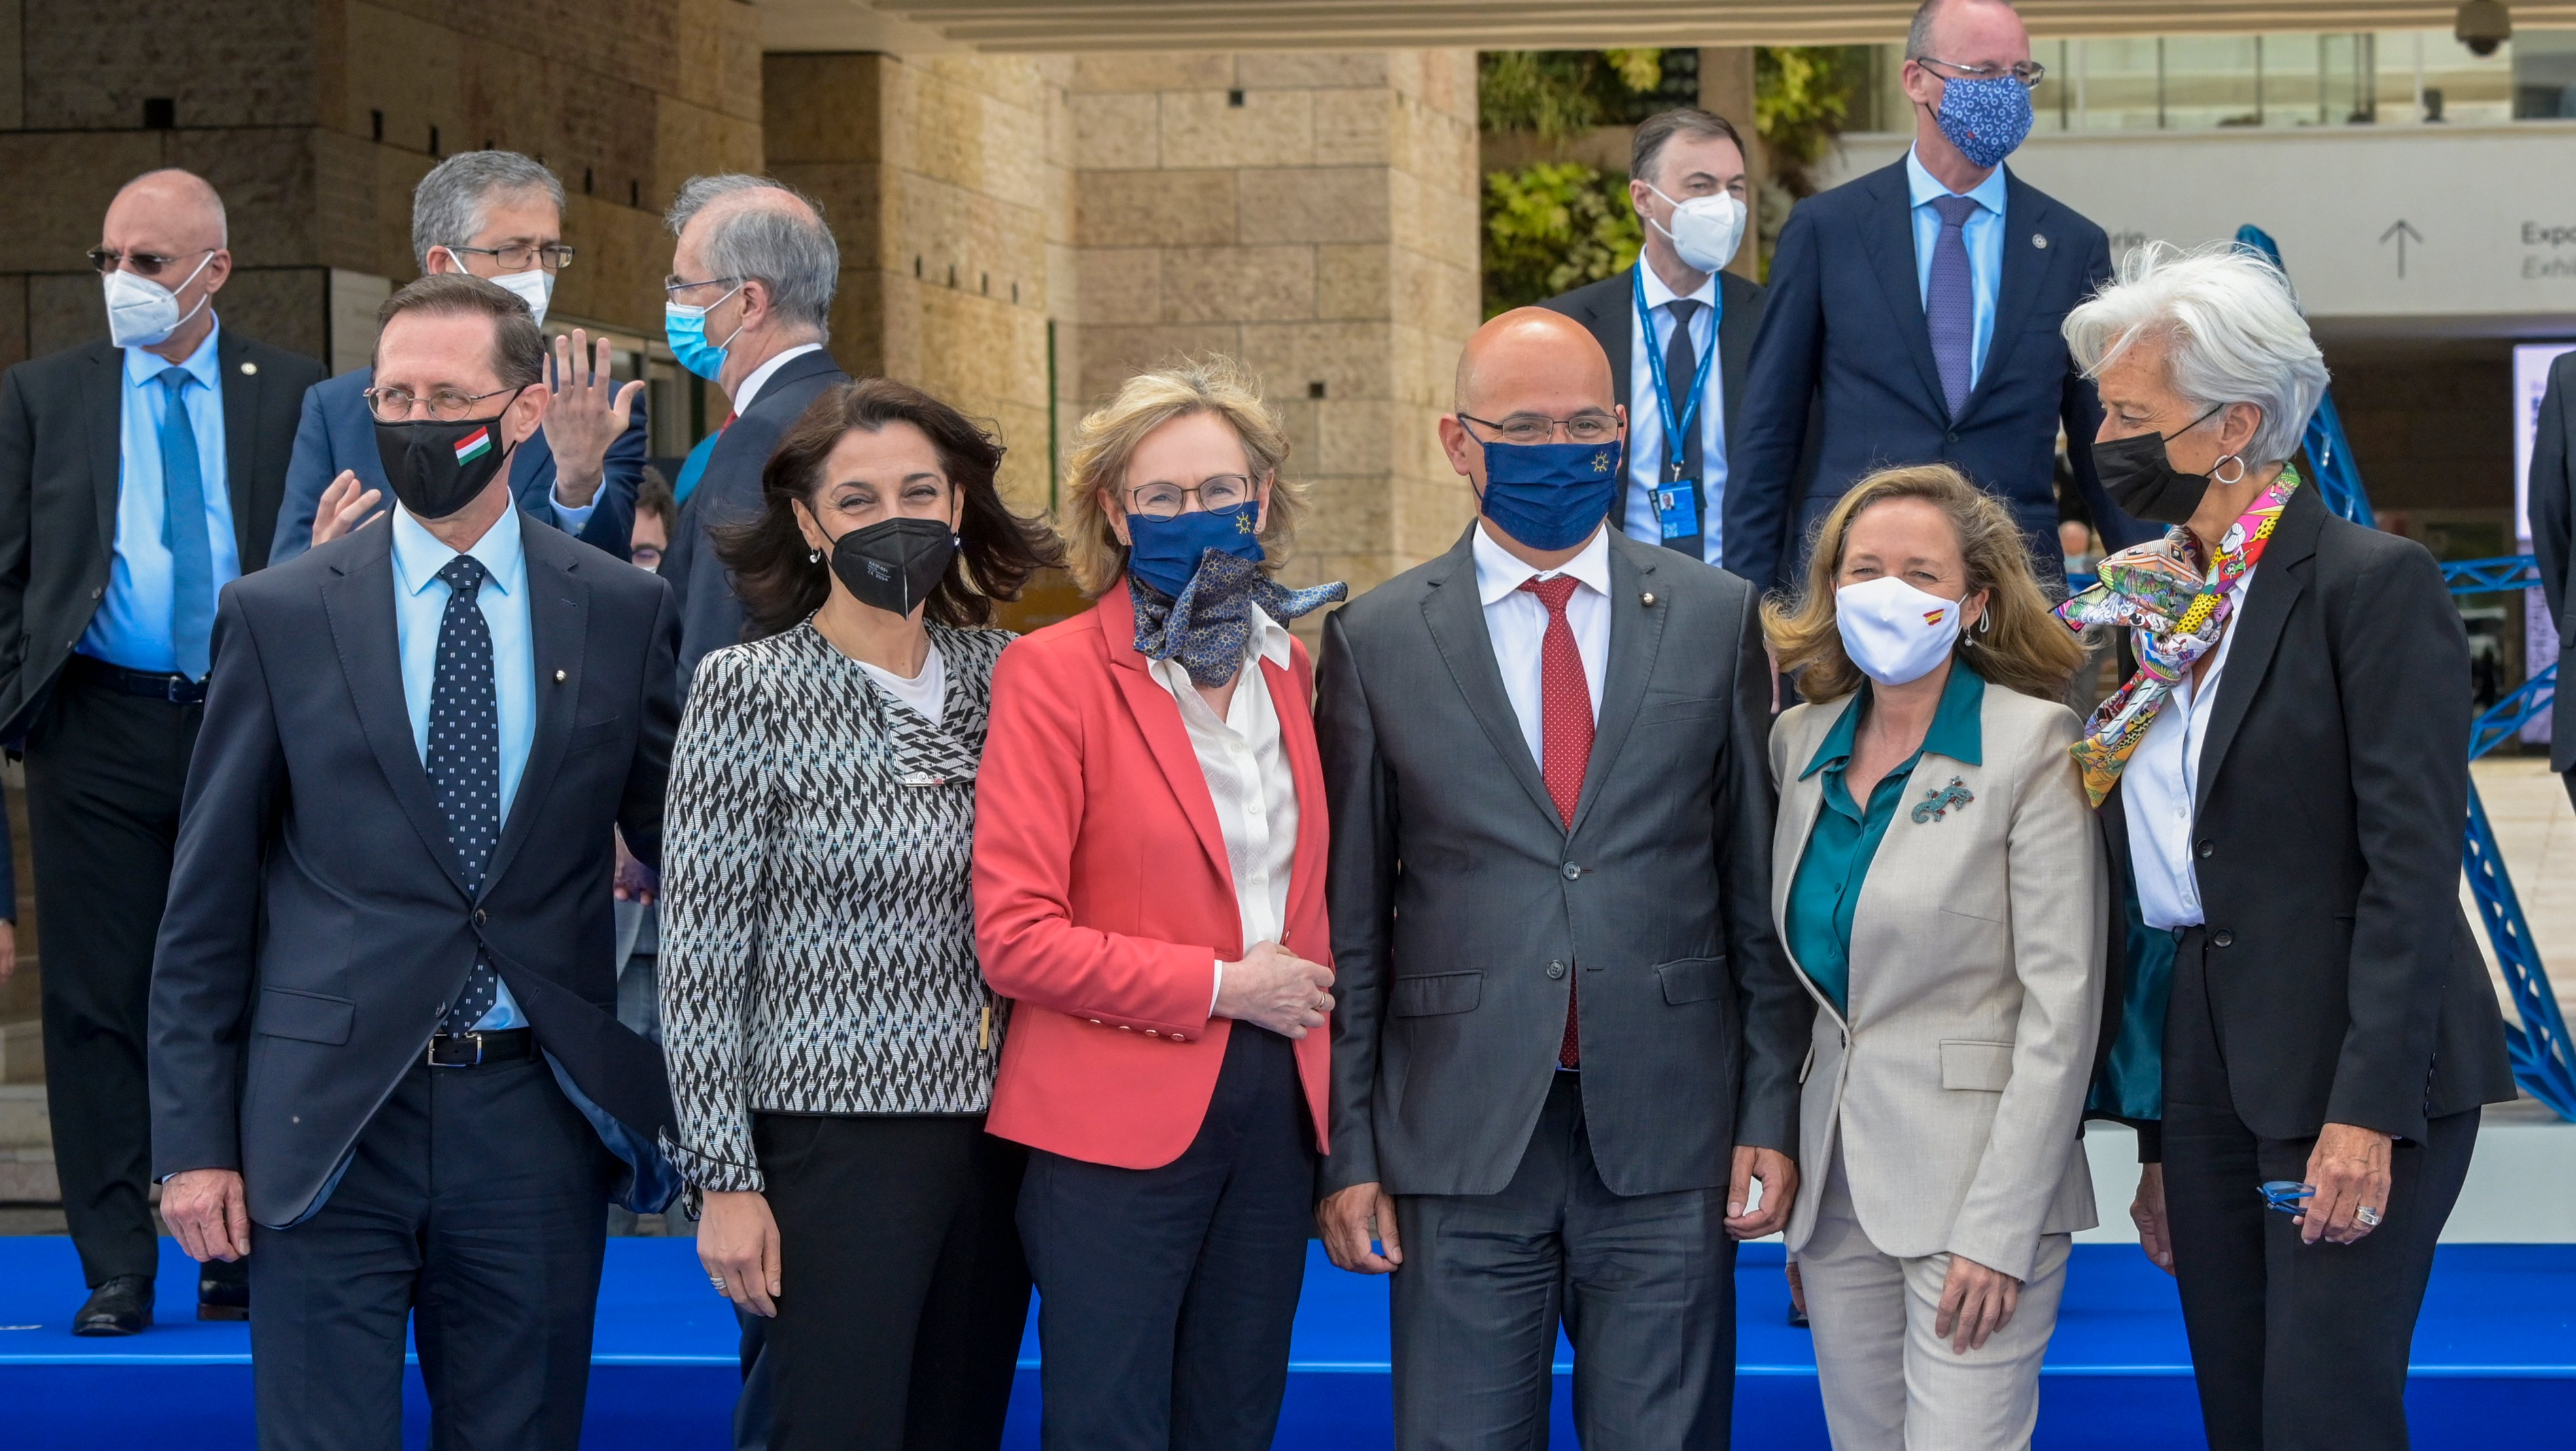 Meeting Of Eurogroup Finance Ministers In Lisbon